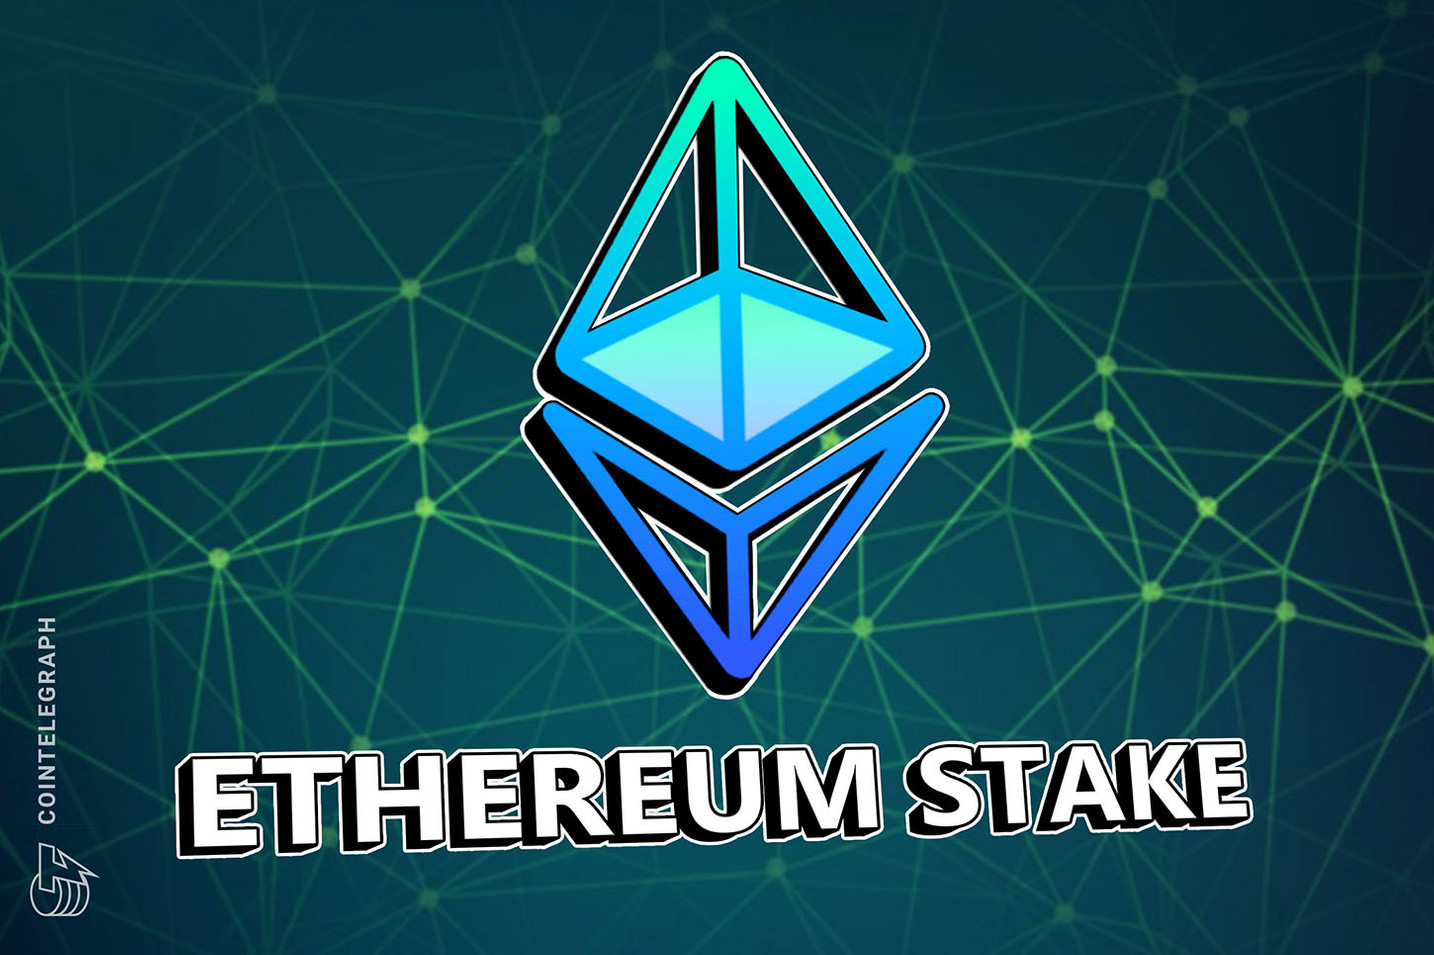 Ethereum Stake ready to launch in DeFi zone — Eth2 validator